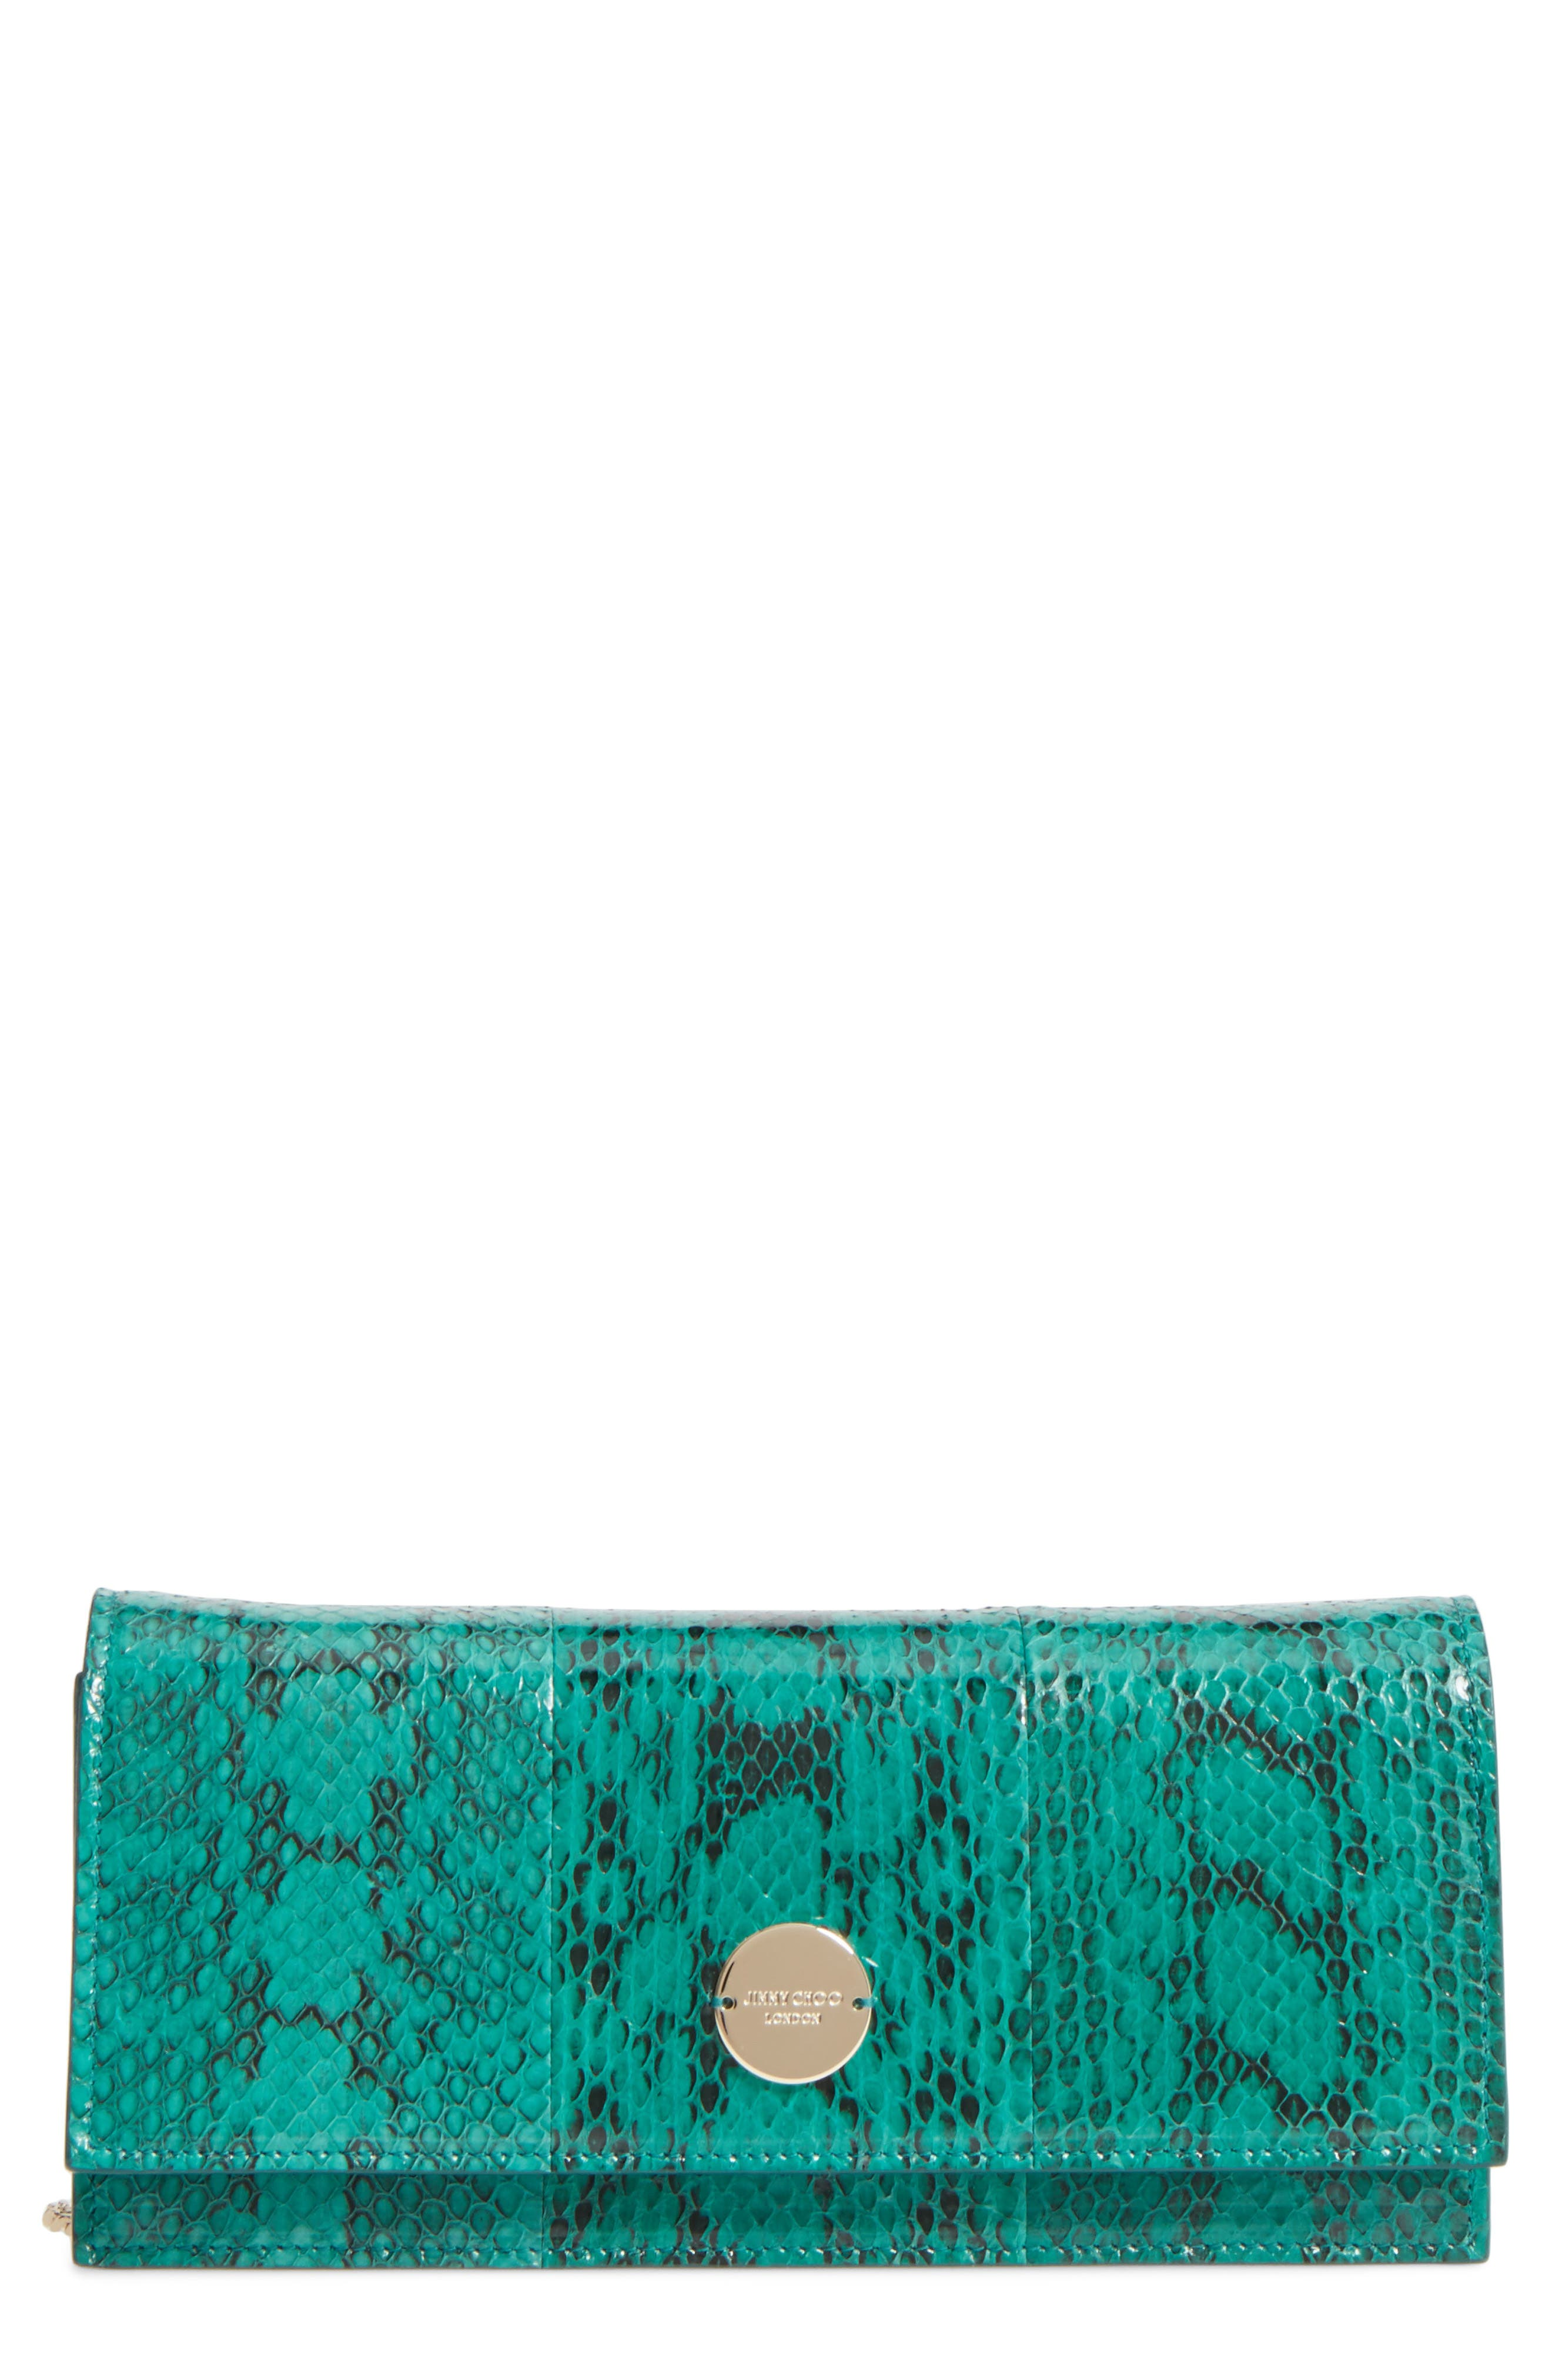 Fie Genuine Snakeskin Clutch,                             Main thumbnail 1, color,                             300